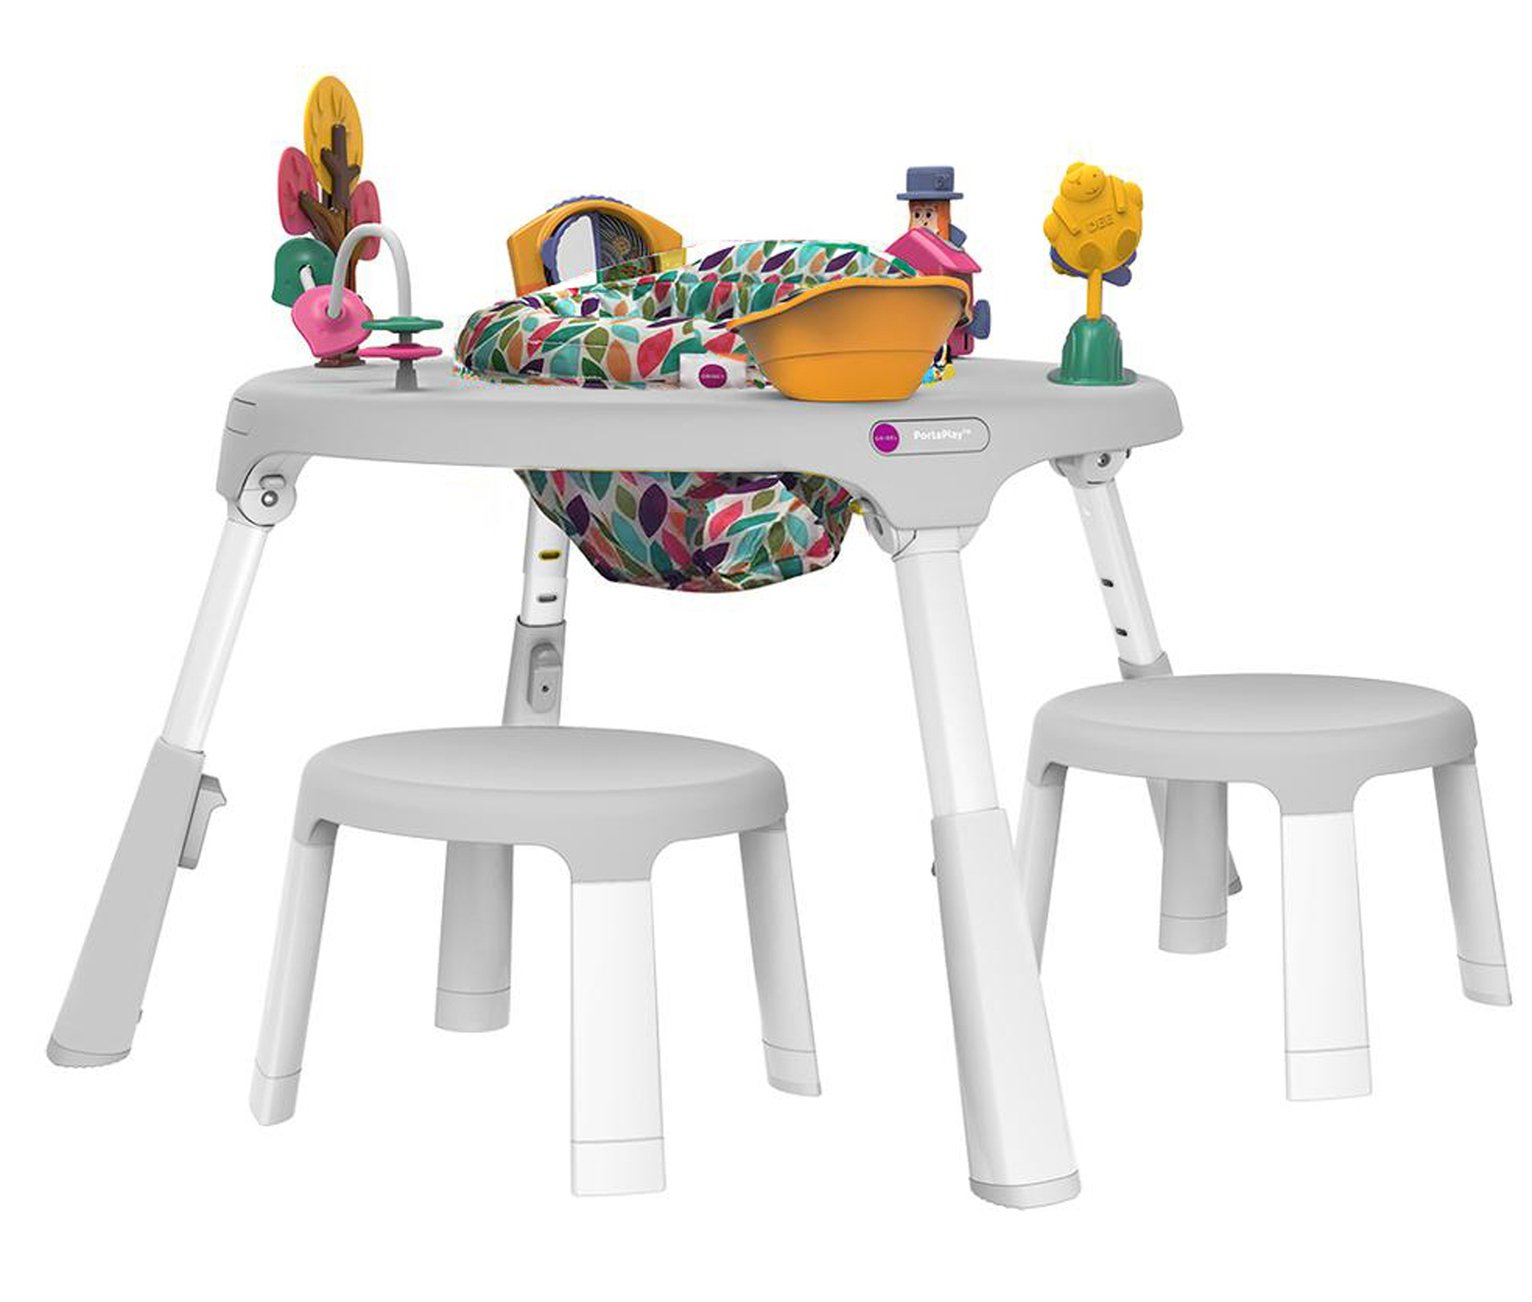 Oribel Portaplay Convertible Activity Centre